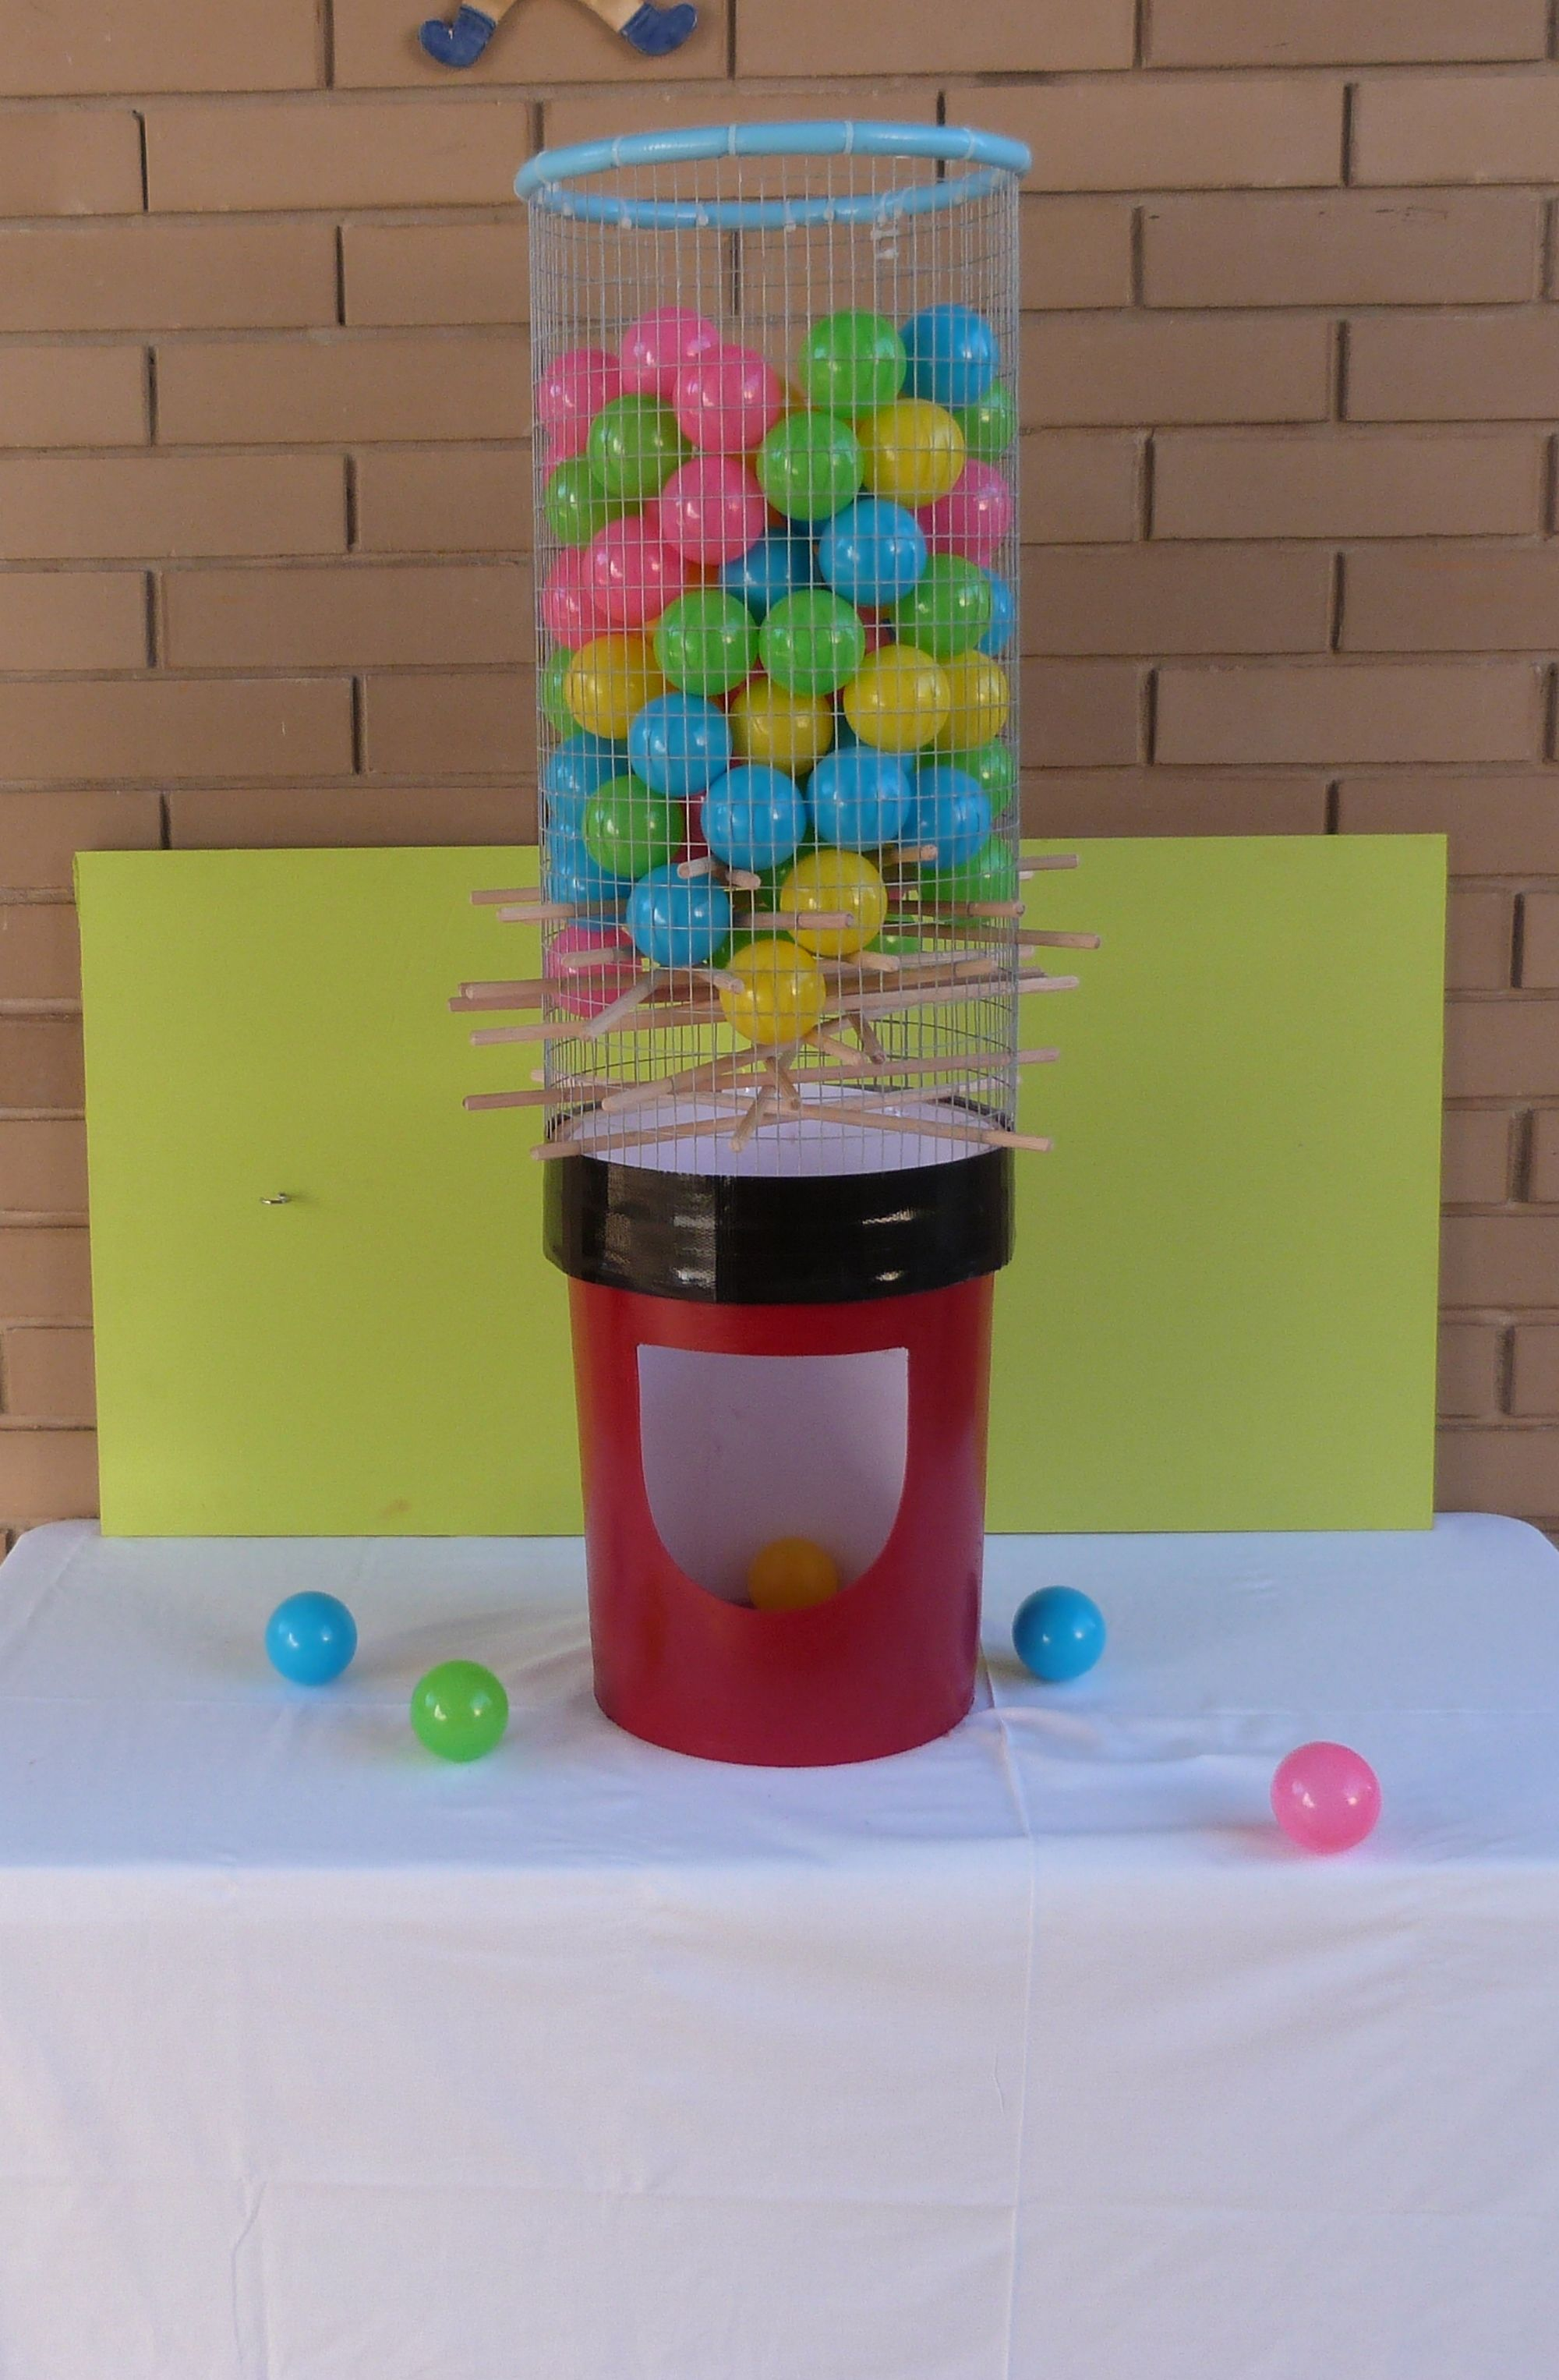 Pin by valerie mrozowski on kids games pinterest kerplunk game